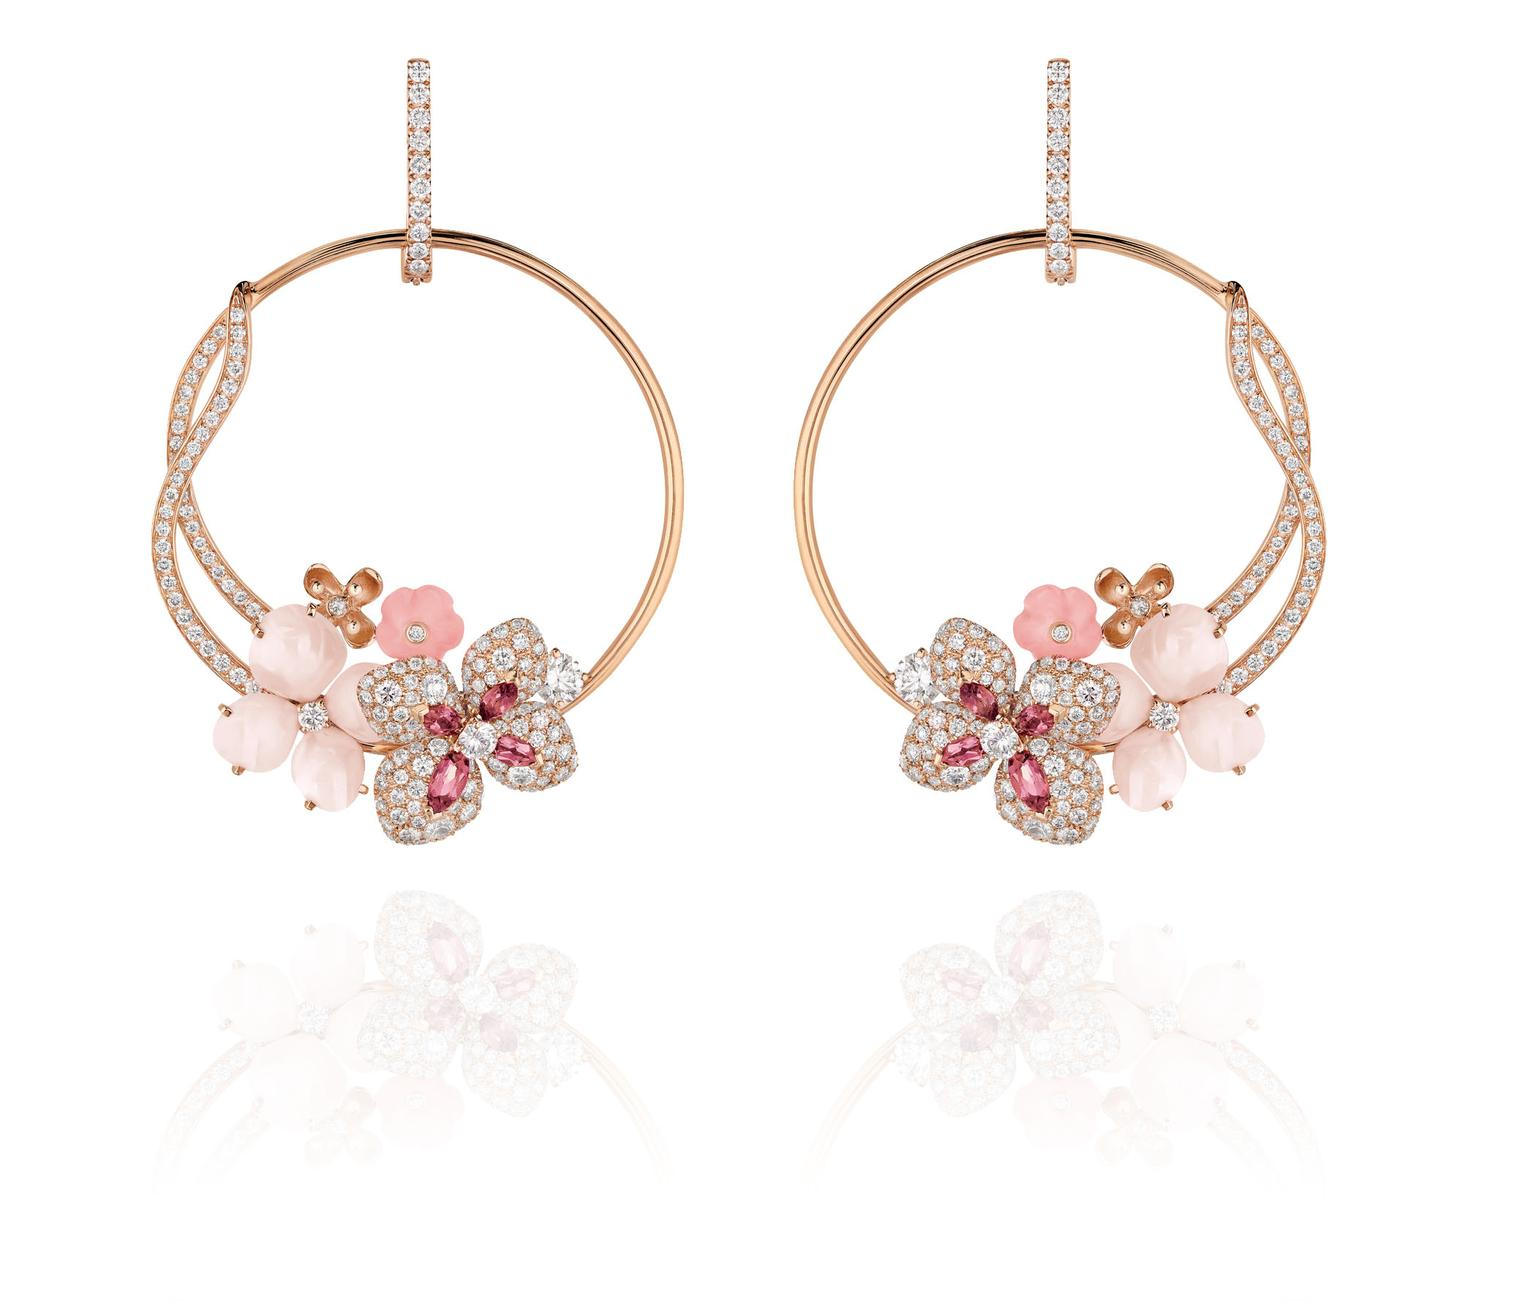 Chaumet-Hortensia-Earrings-zoom